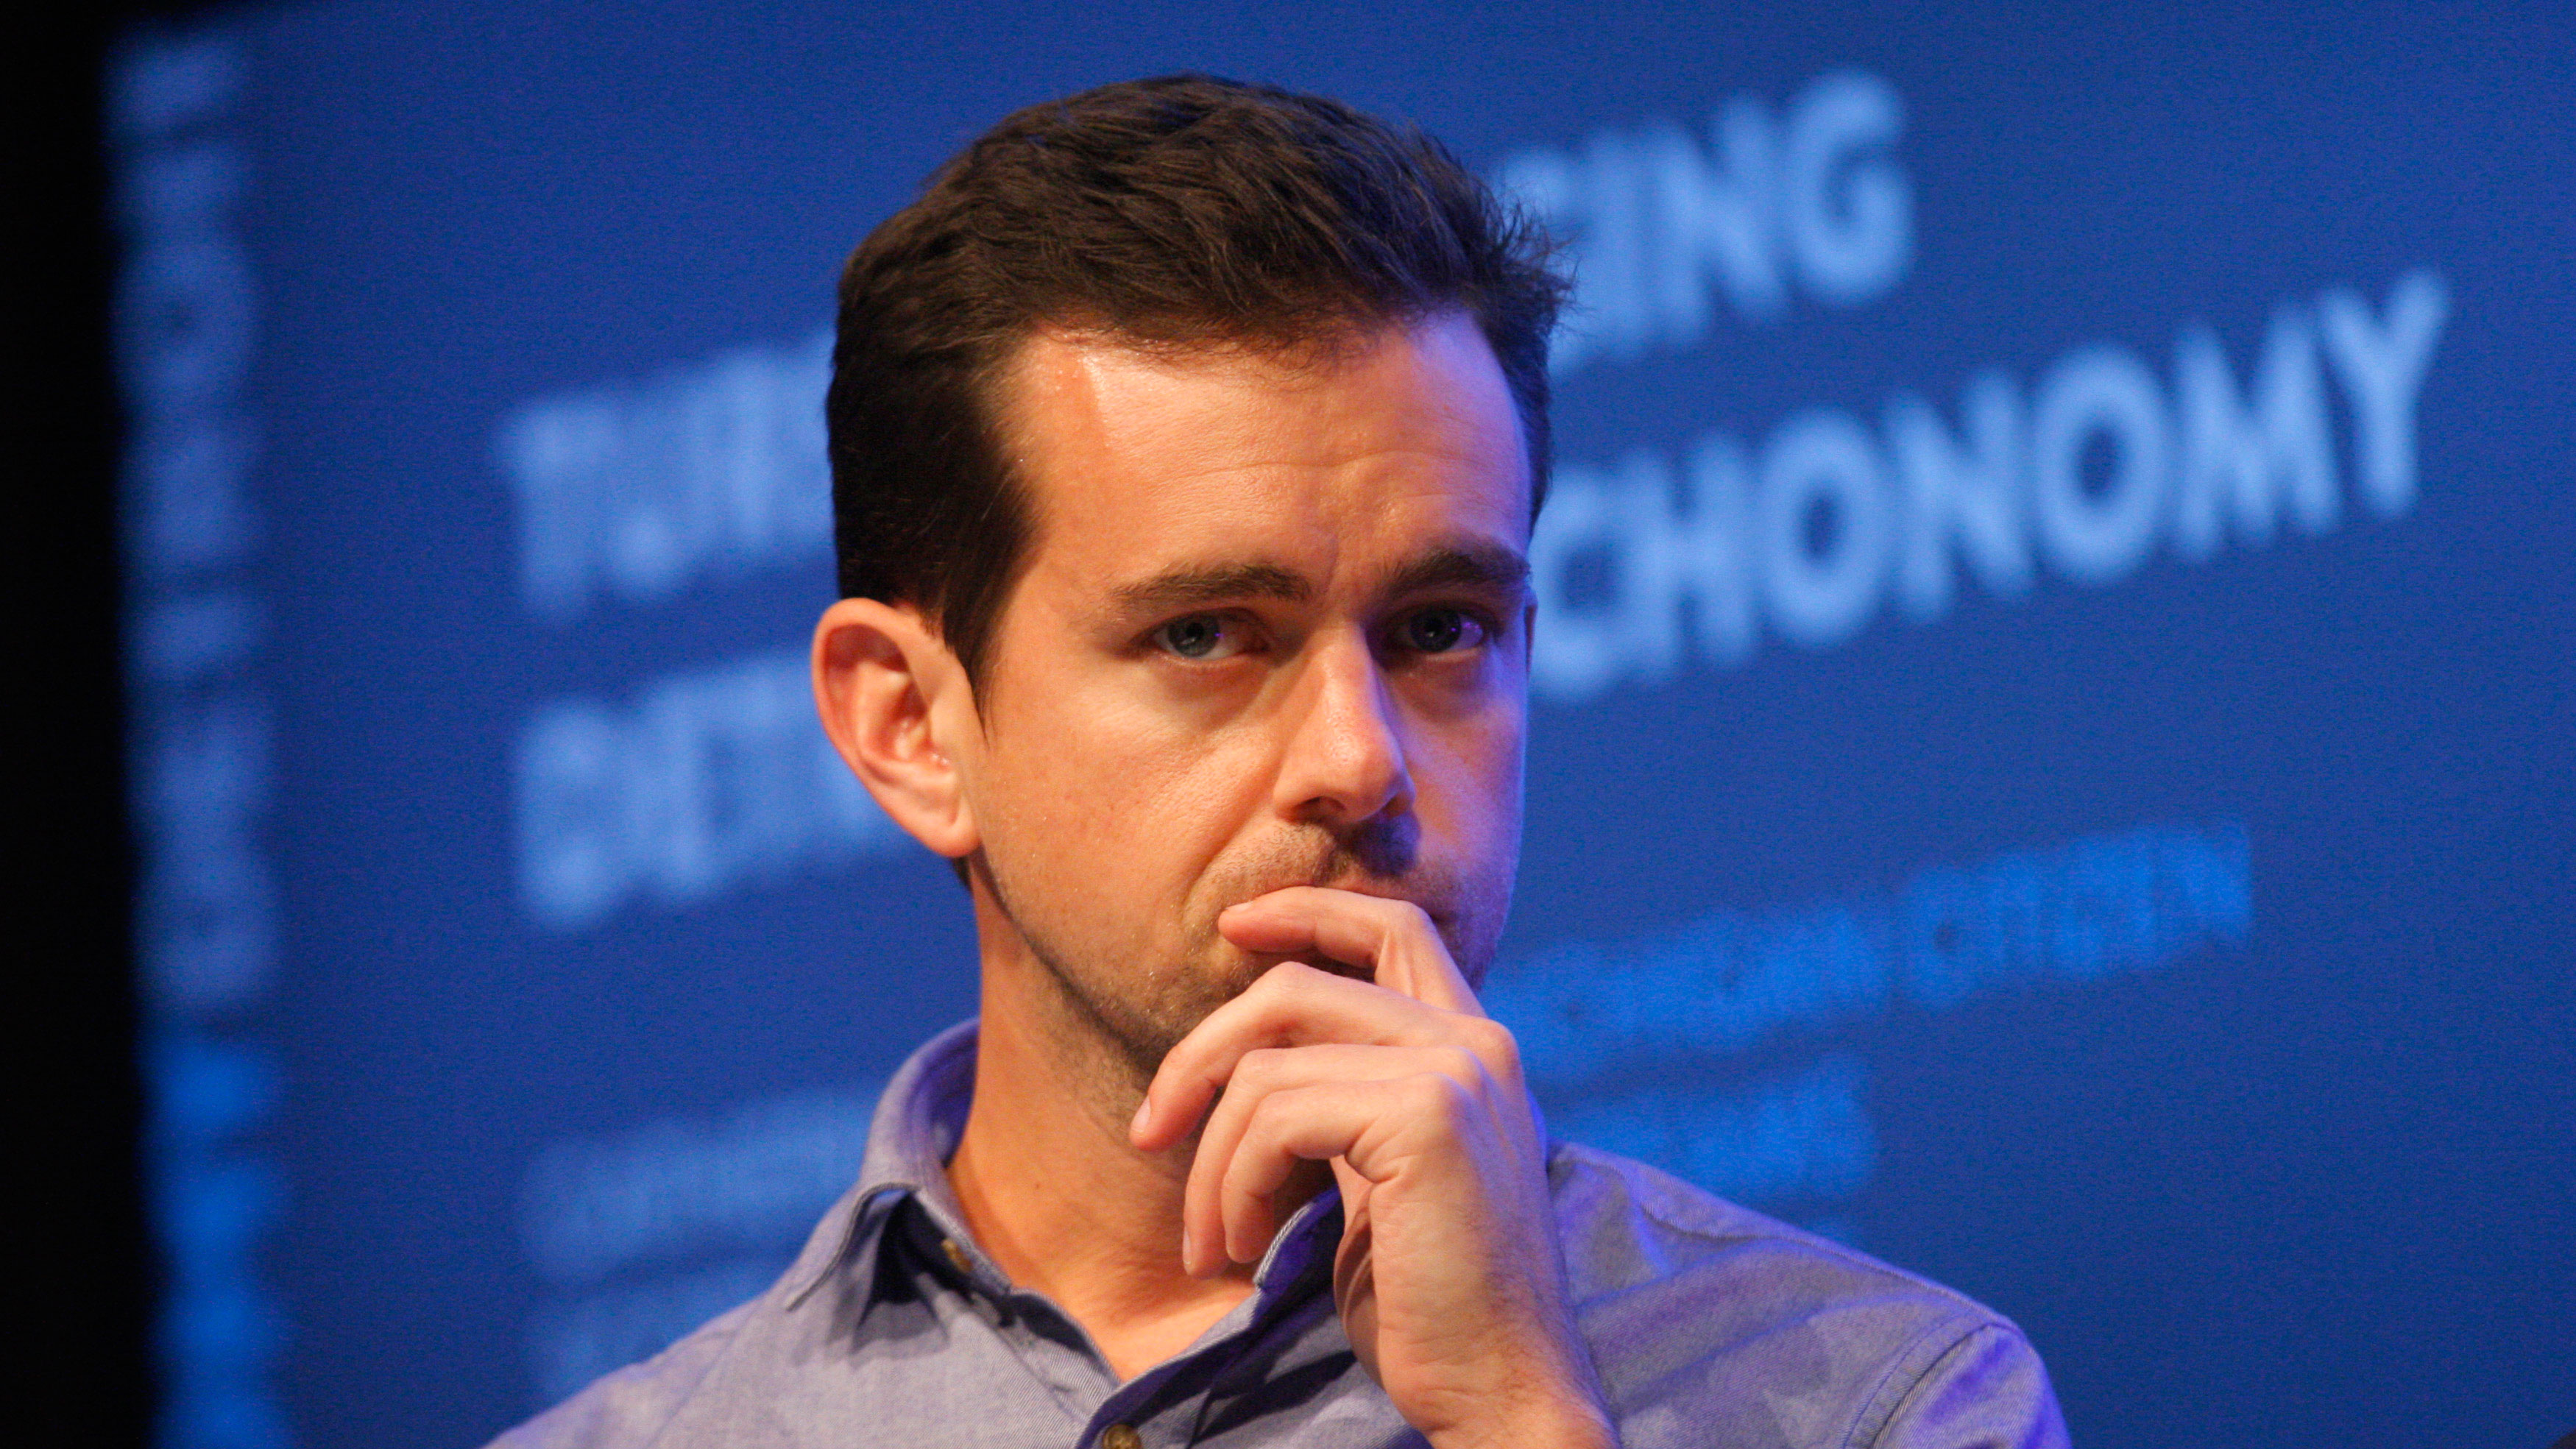 Jack Dorsey, chairman of Twitter and CEO of Square, listens to a fellow panelist during a Techonomy Detroit panel discussion held at Wayne State University in Detroit, Michigan September 17, 2013. REUTERS/Rebecca Cook (UNITED STATES - Tags: BUSINESS SCIENCE TECHNOLOGY)